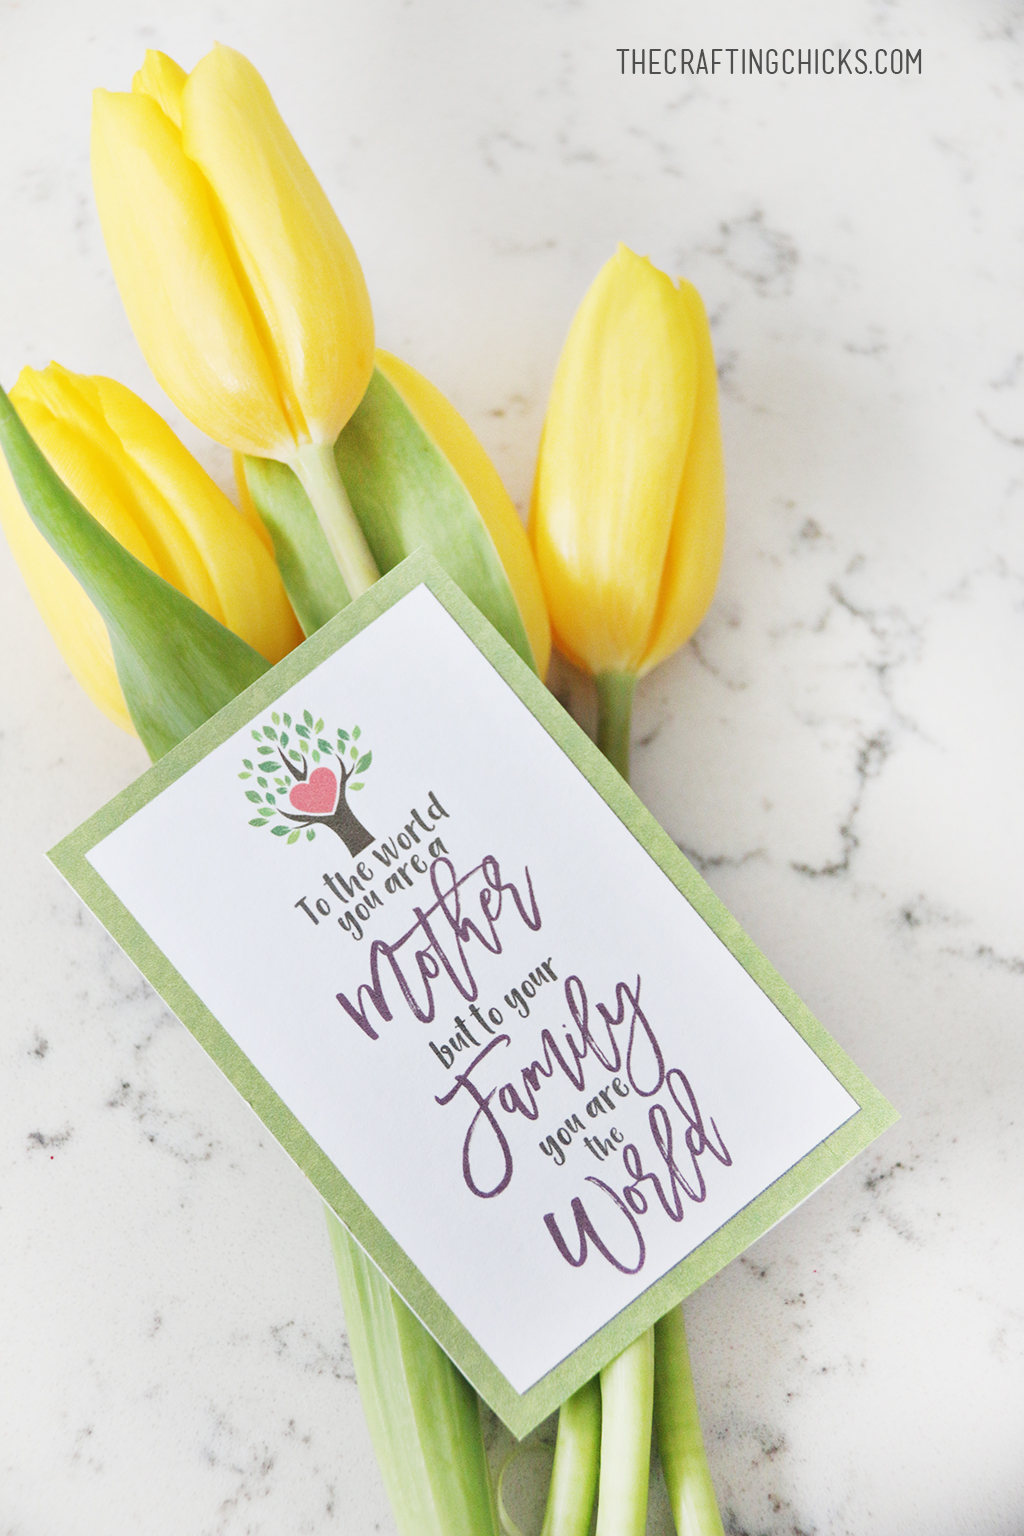 https://thecraftingchicks.com/wp-content/uploads/2018/05/cc-mothers-day-card-2.jpg